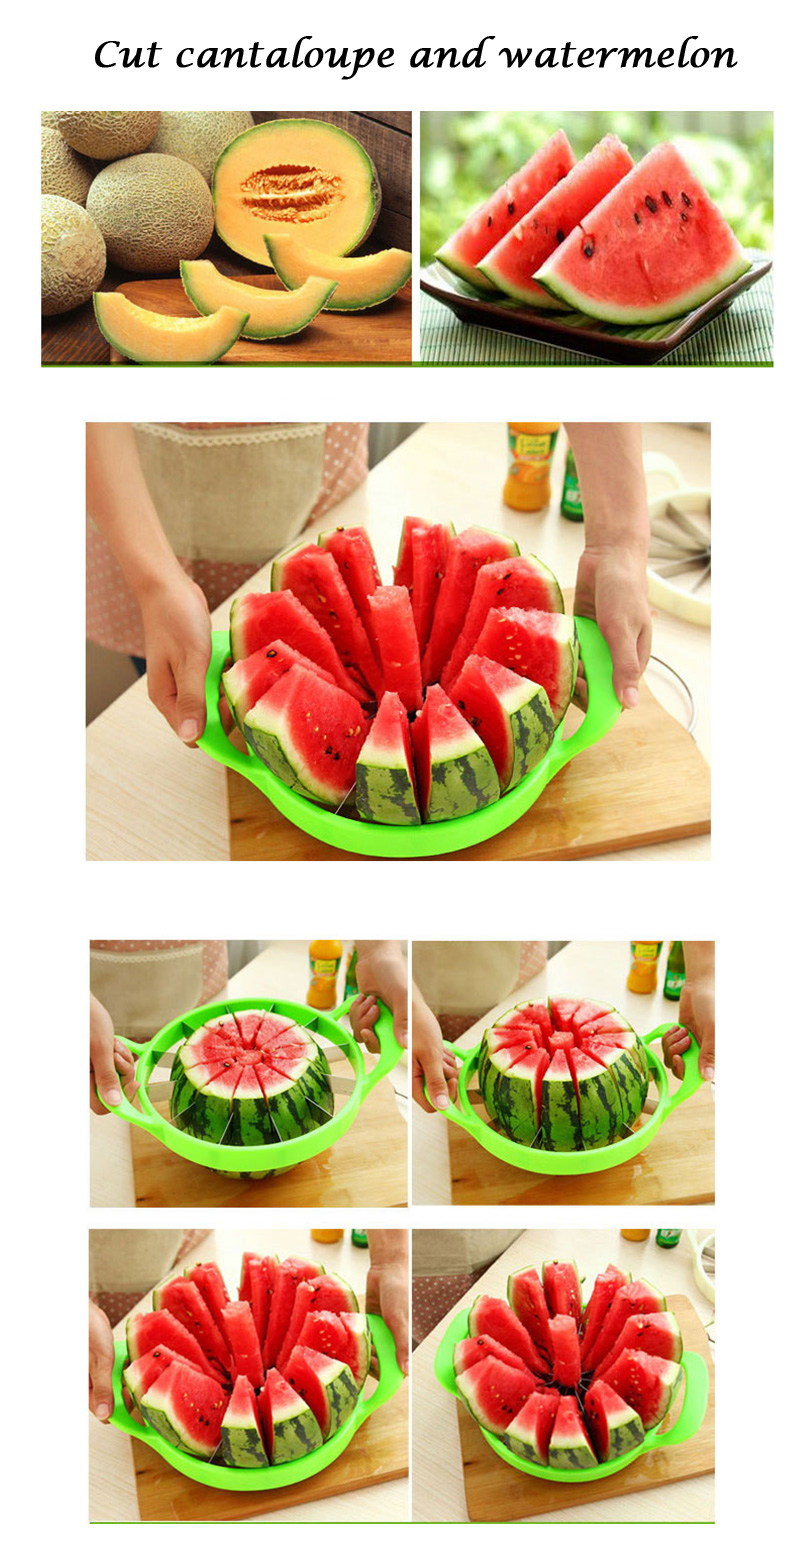 Kitchen gadgets 2018 Summer Stainless Steel Watermelon Sliced cutter knife fruit Slicer Salad Making tools kitchen accessories  (10)